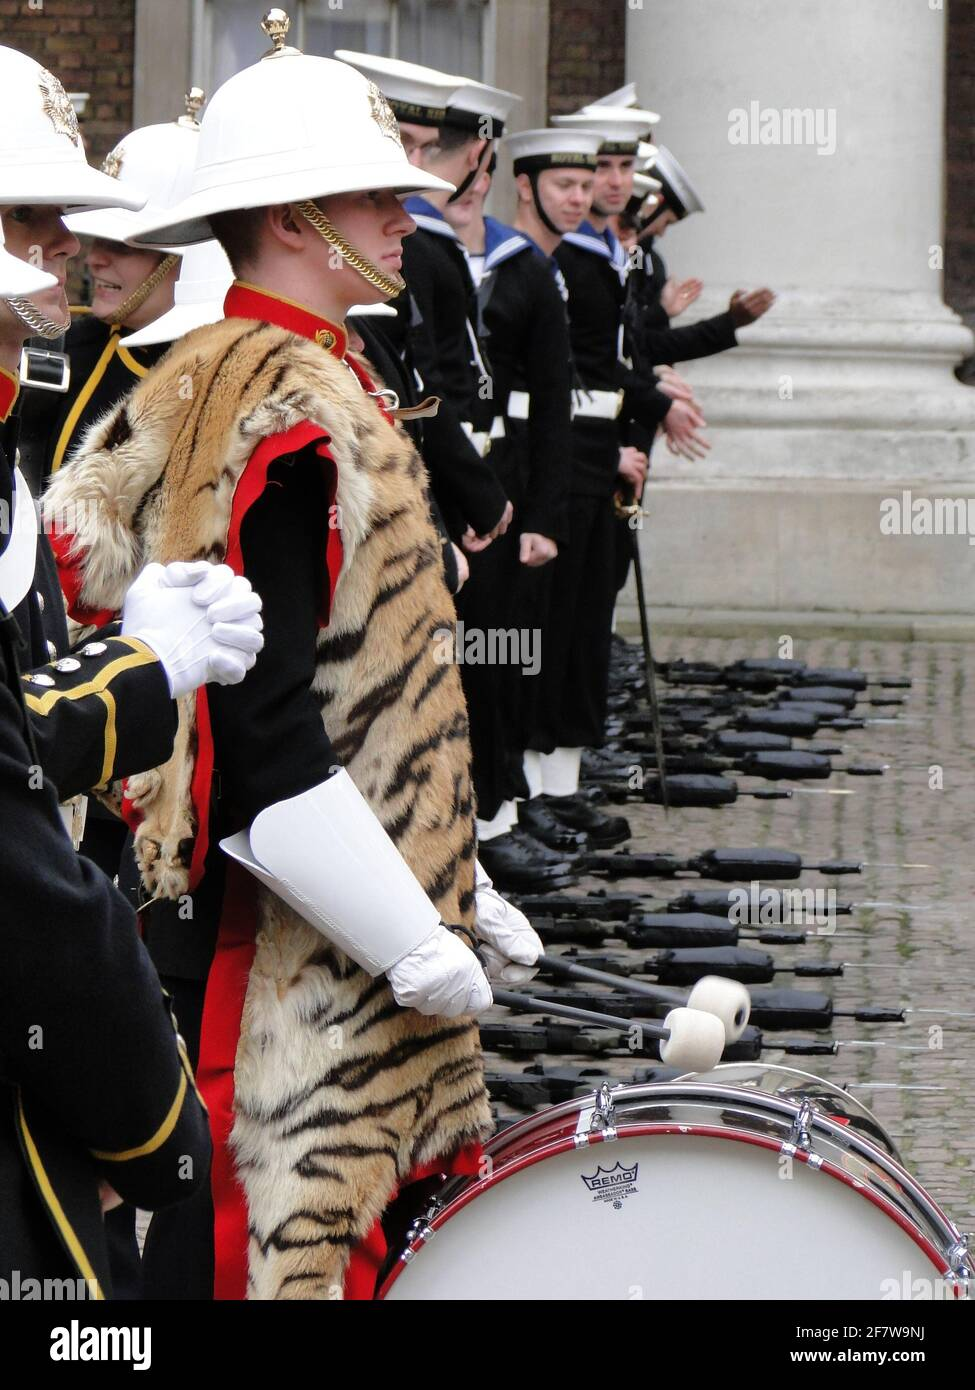 The Queen formally presenting the Duke of Edinburgh with the title and office of Lord High Admiral of the Navy in Whitehall, to mark his 90th anniversary. London, UK Stock Photo